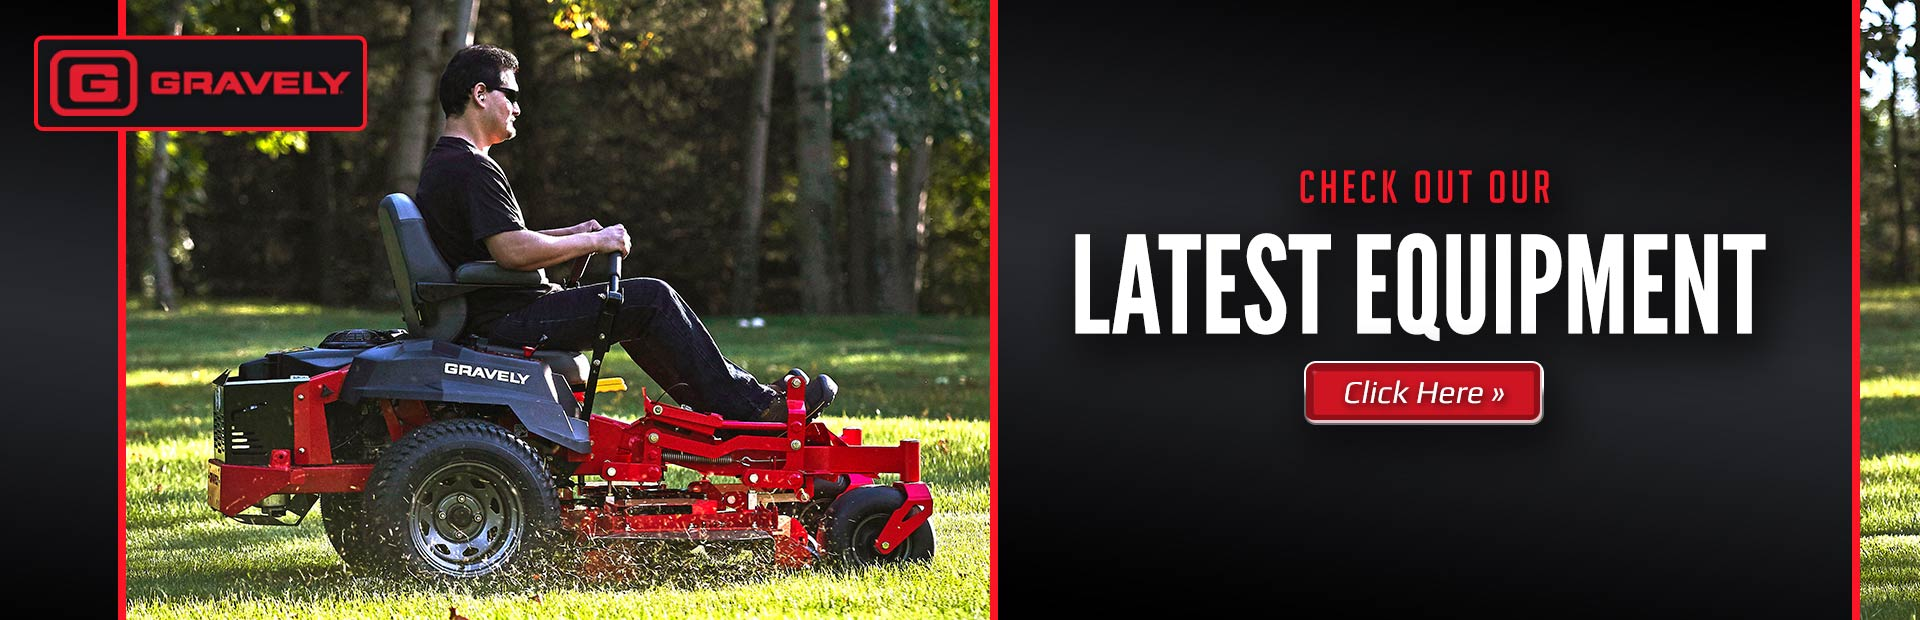 Gravely Equipment: Click here to view the models.